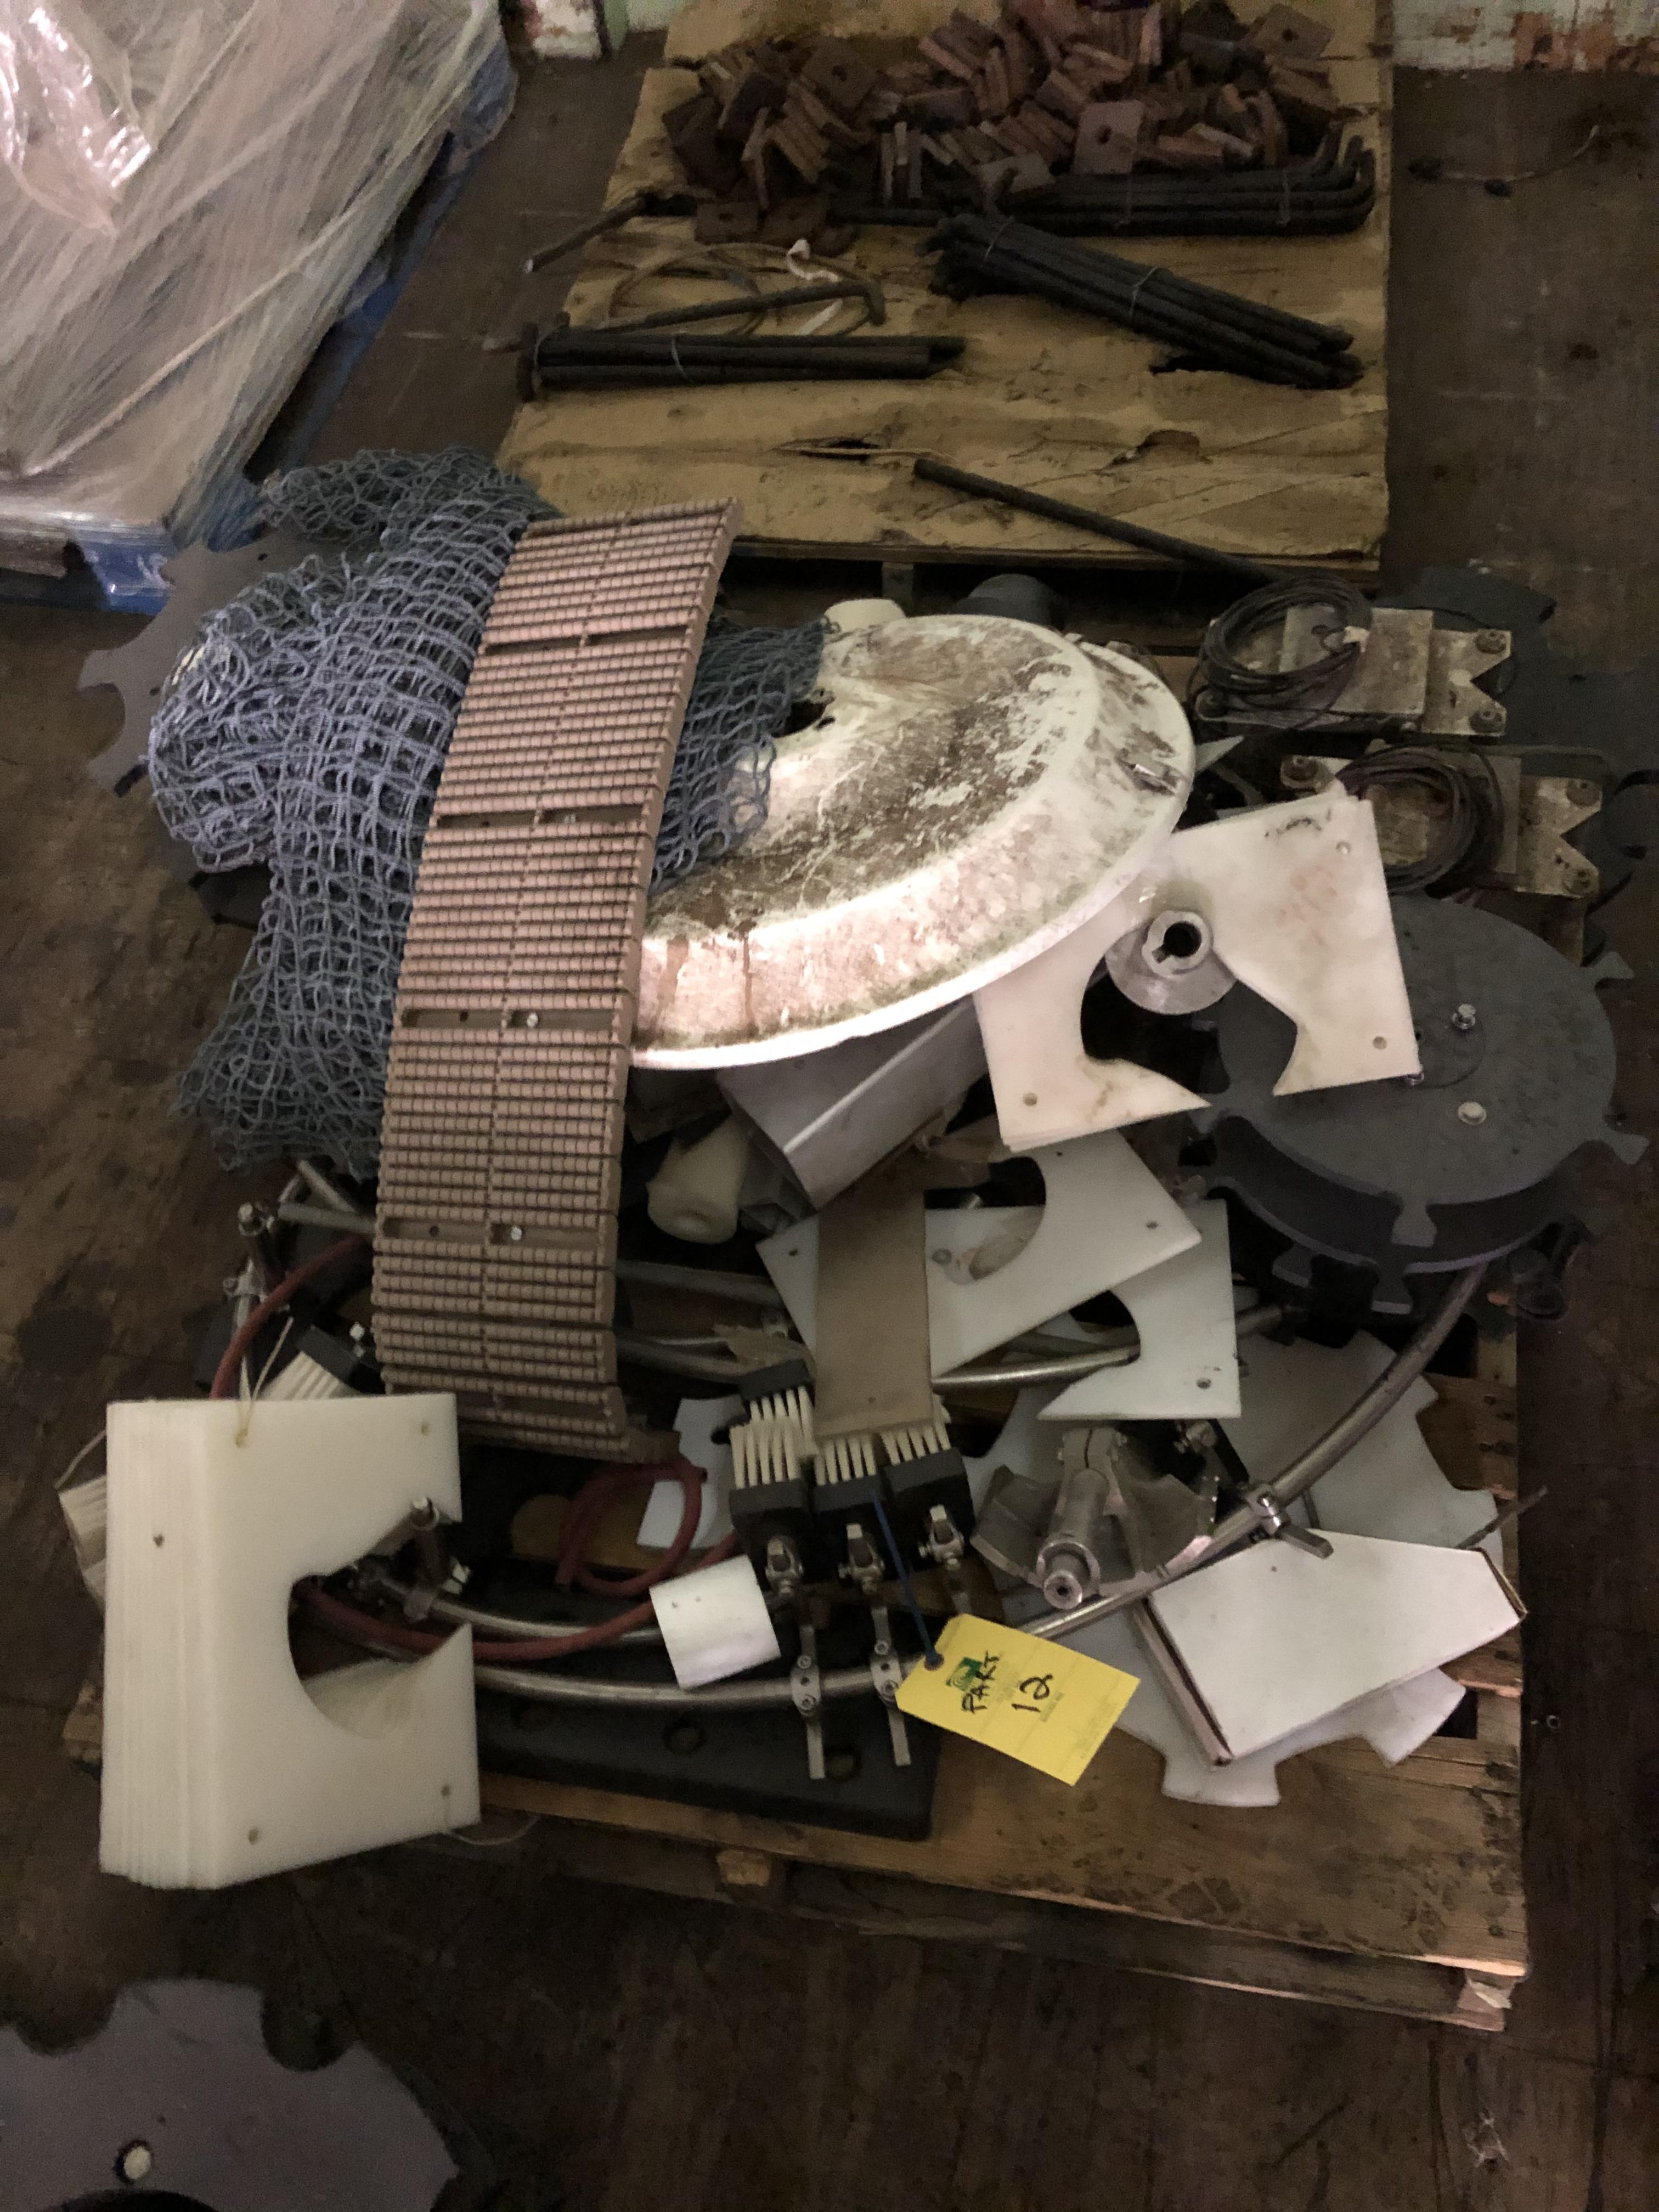 Krones Labeler, Parts & Components, RIGGING FEE - $75 - Image 2 of 3